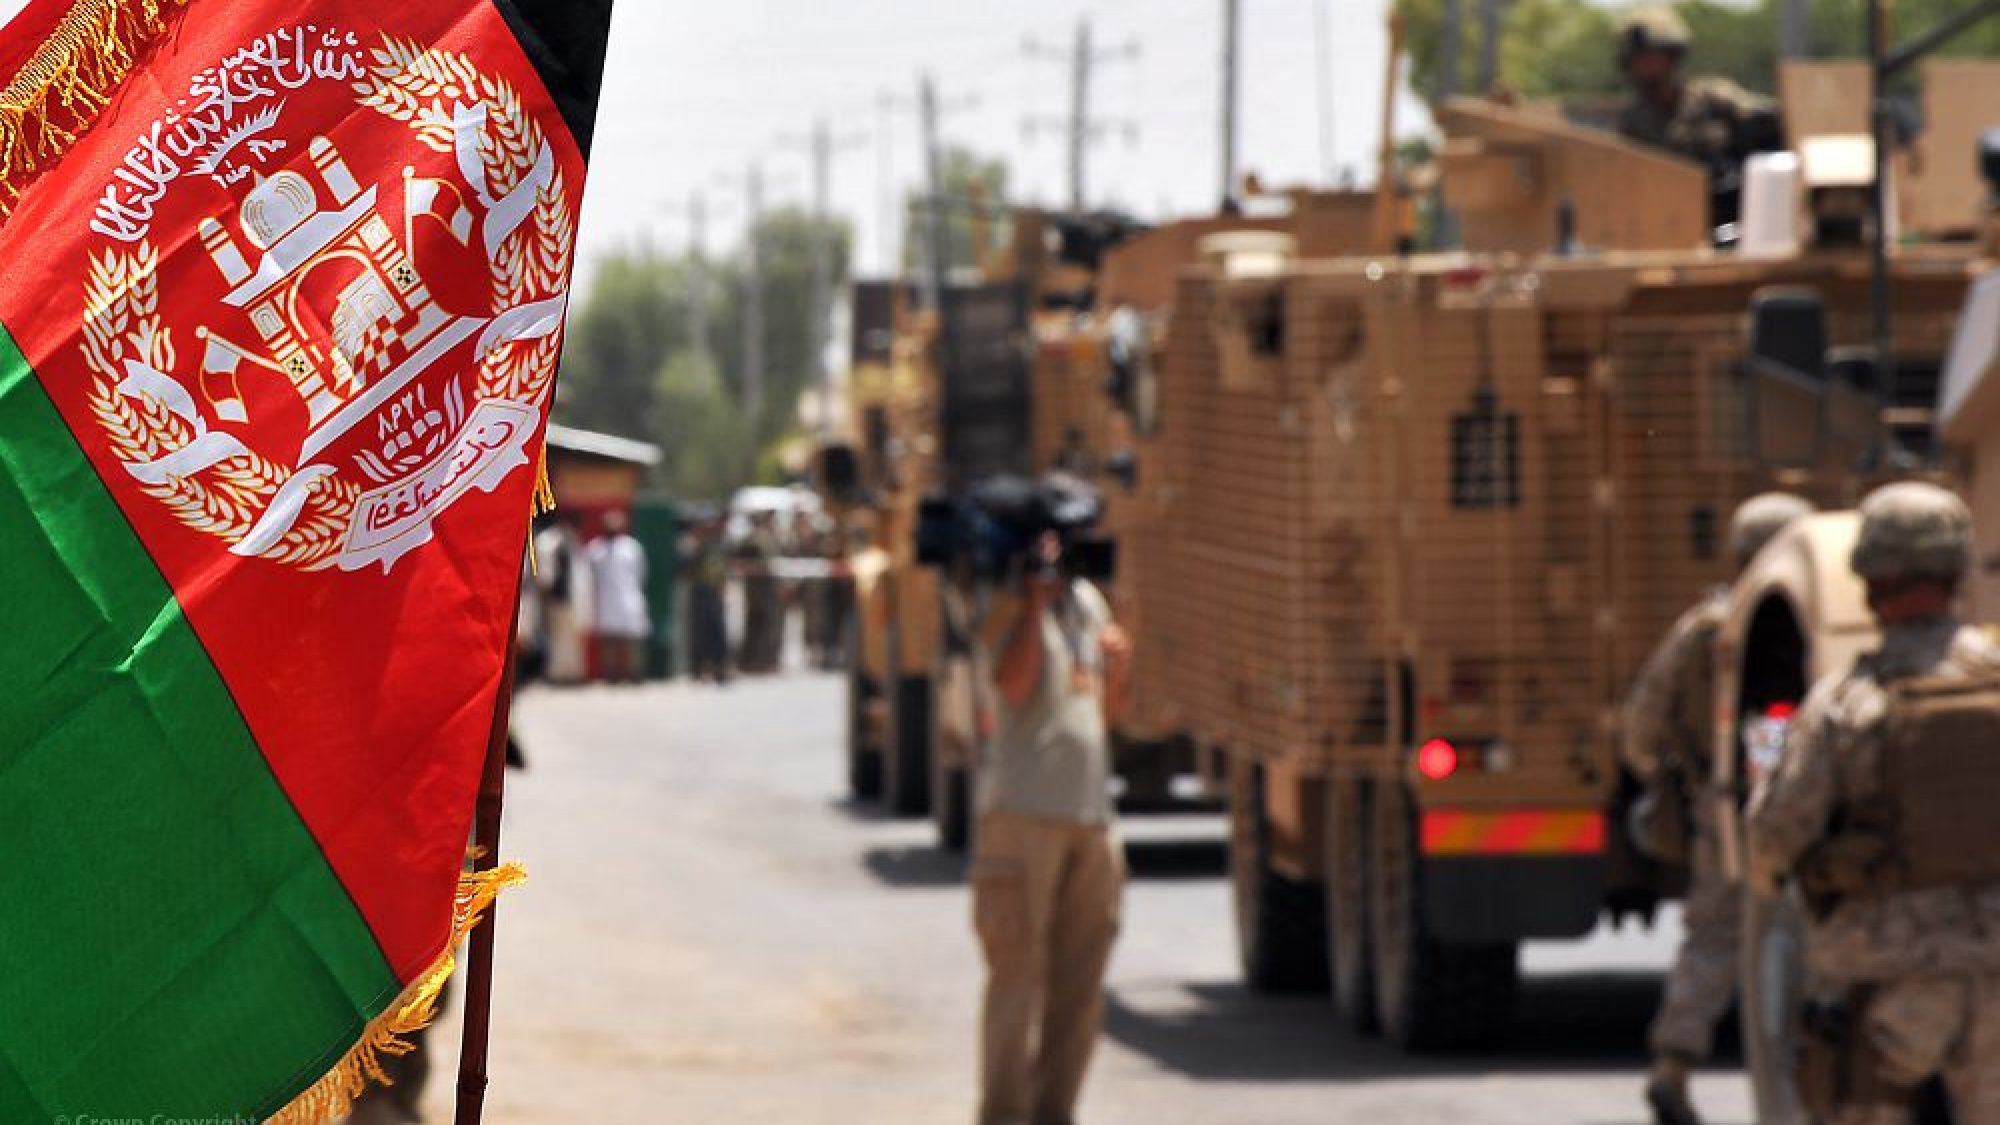 Afghan flag on the foreground, military troops and vehicles are blurred in the backgroud.